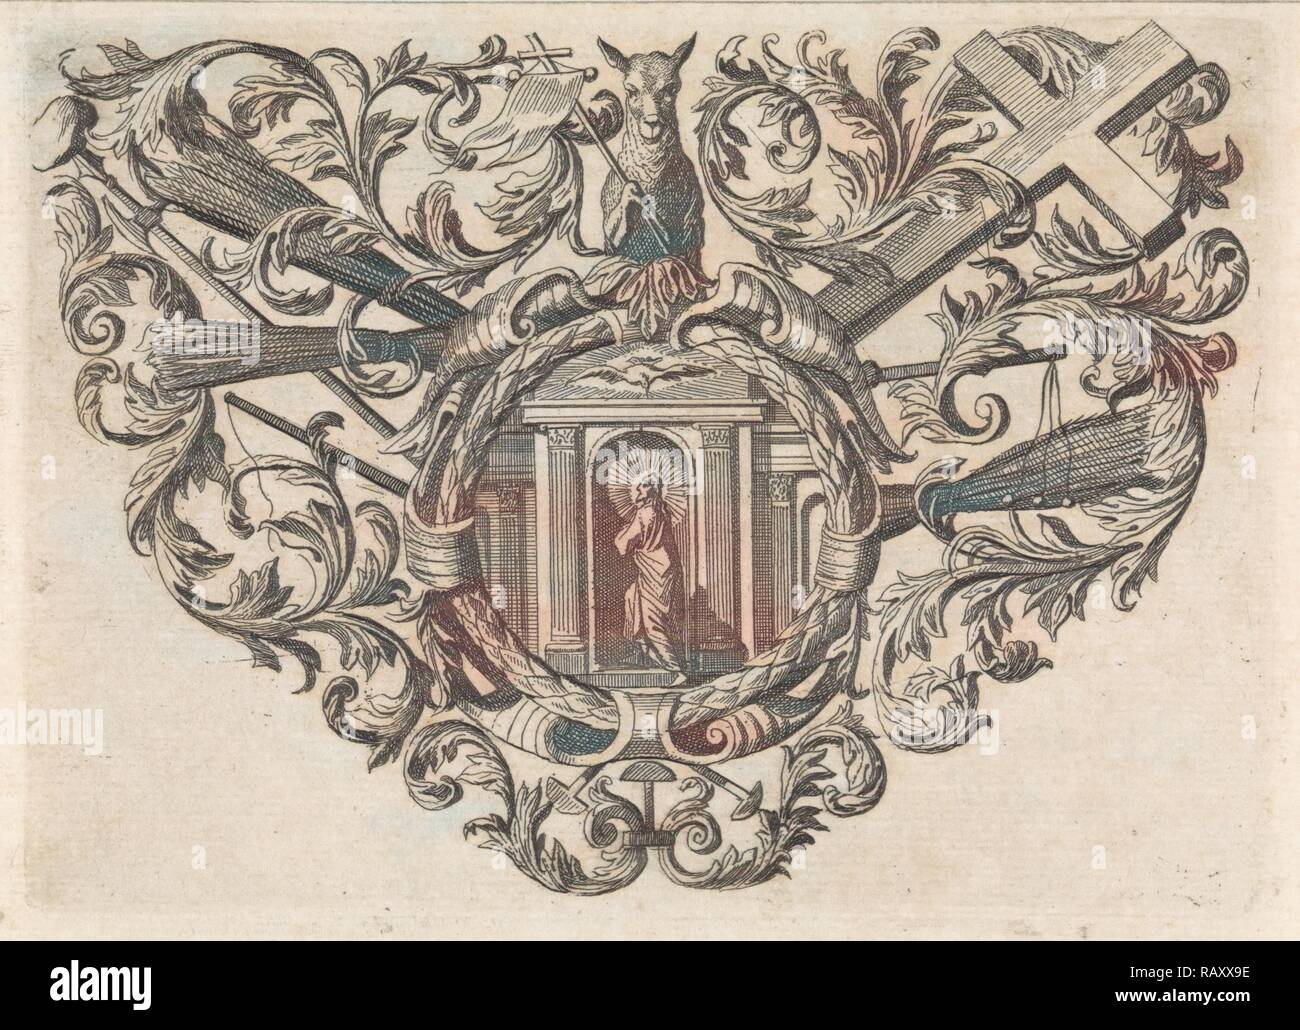 The image of Christ is contained in an ornamental frame with floral motifs and Christian symbols, print maker: Caspar reimagined - Stock Image